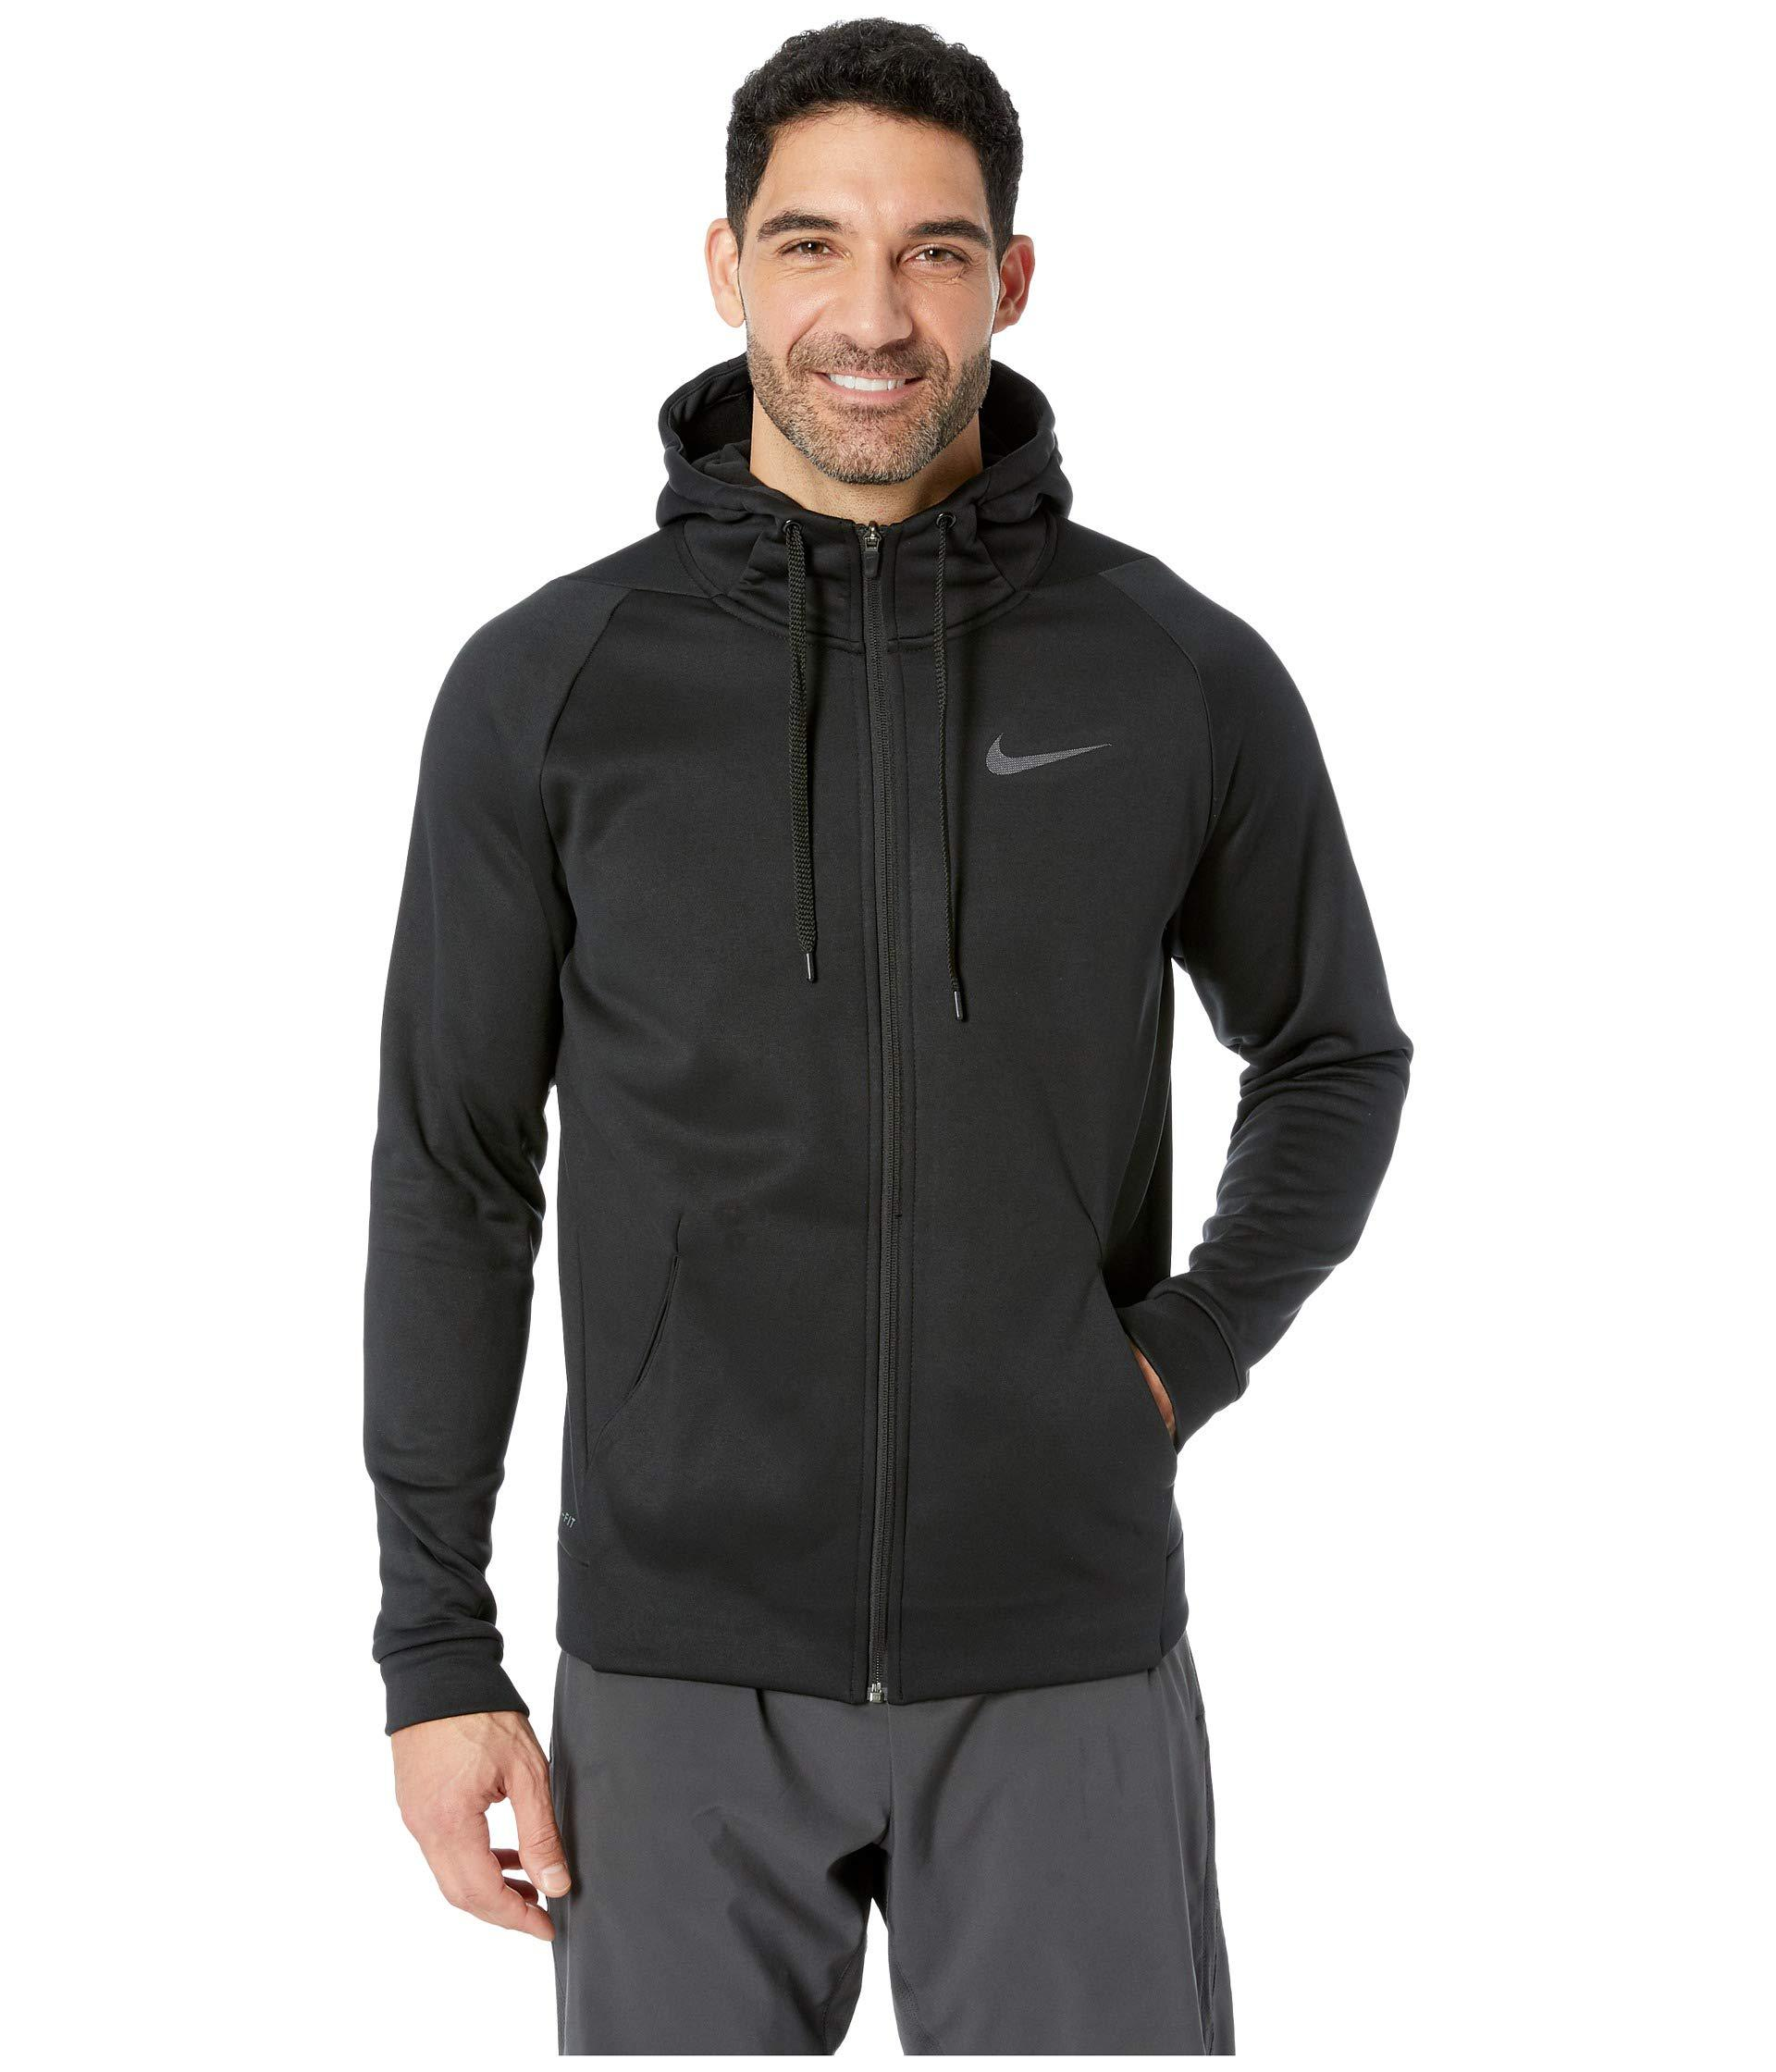 Lyst - Nike Dri-fit Therma Men s Full-zip Training Hoodie (charcoal ... ae07a8958325